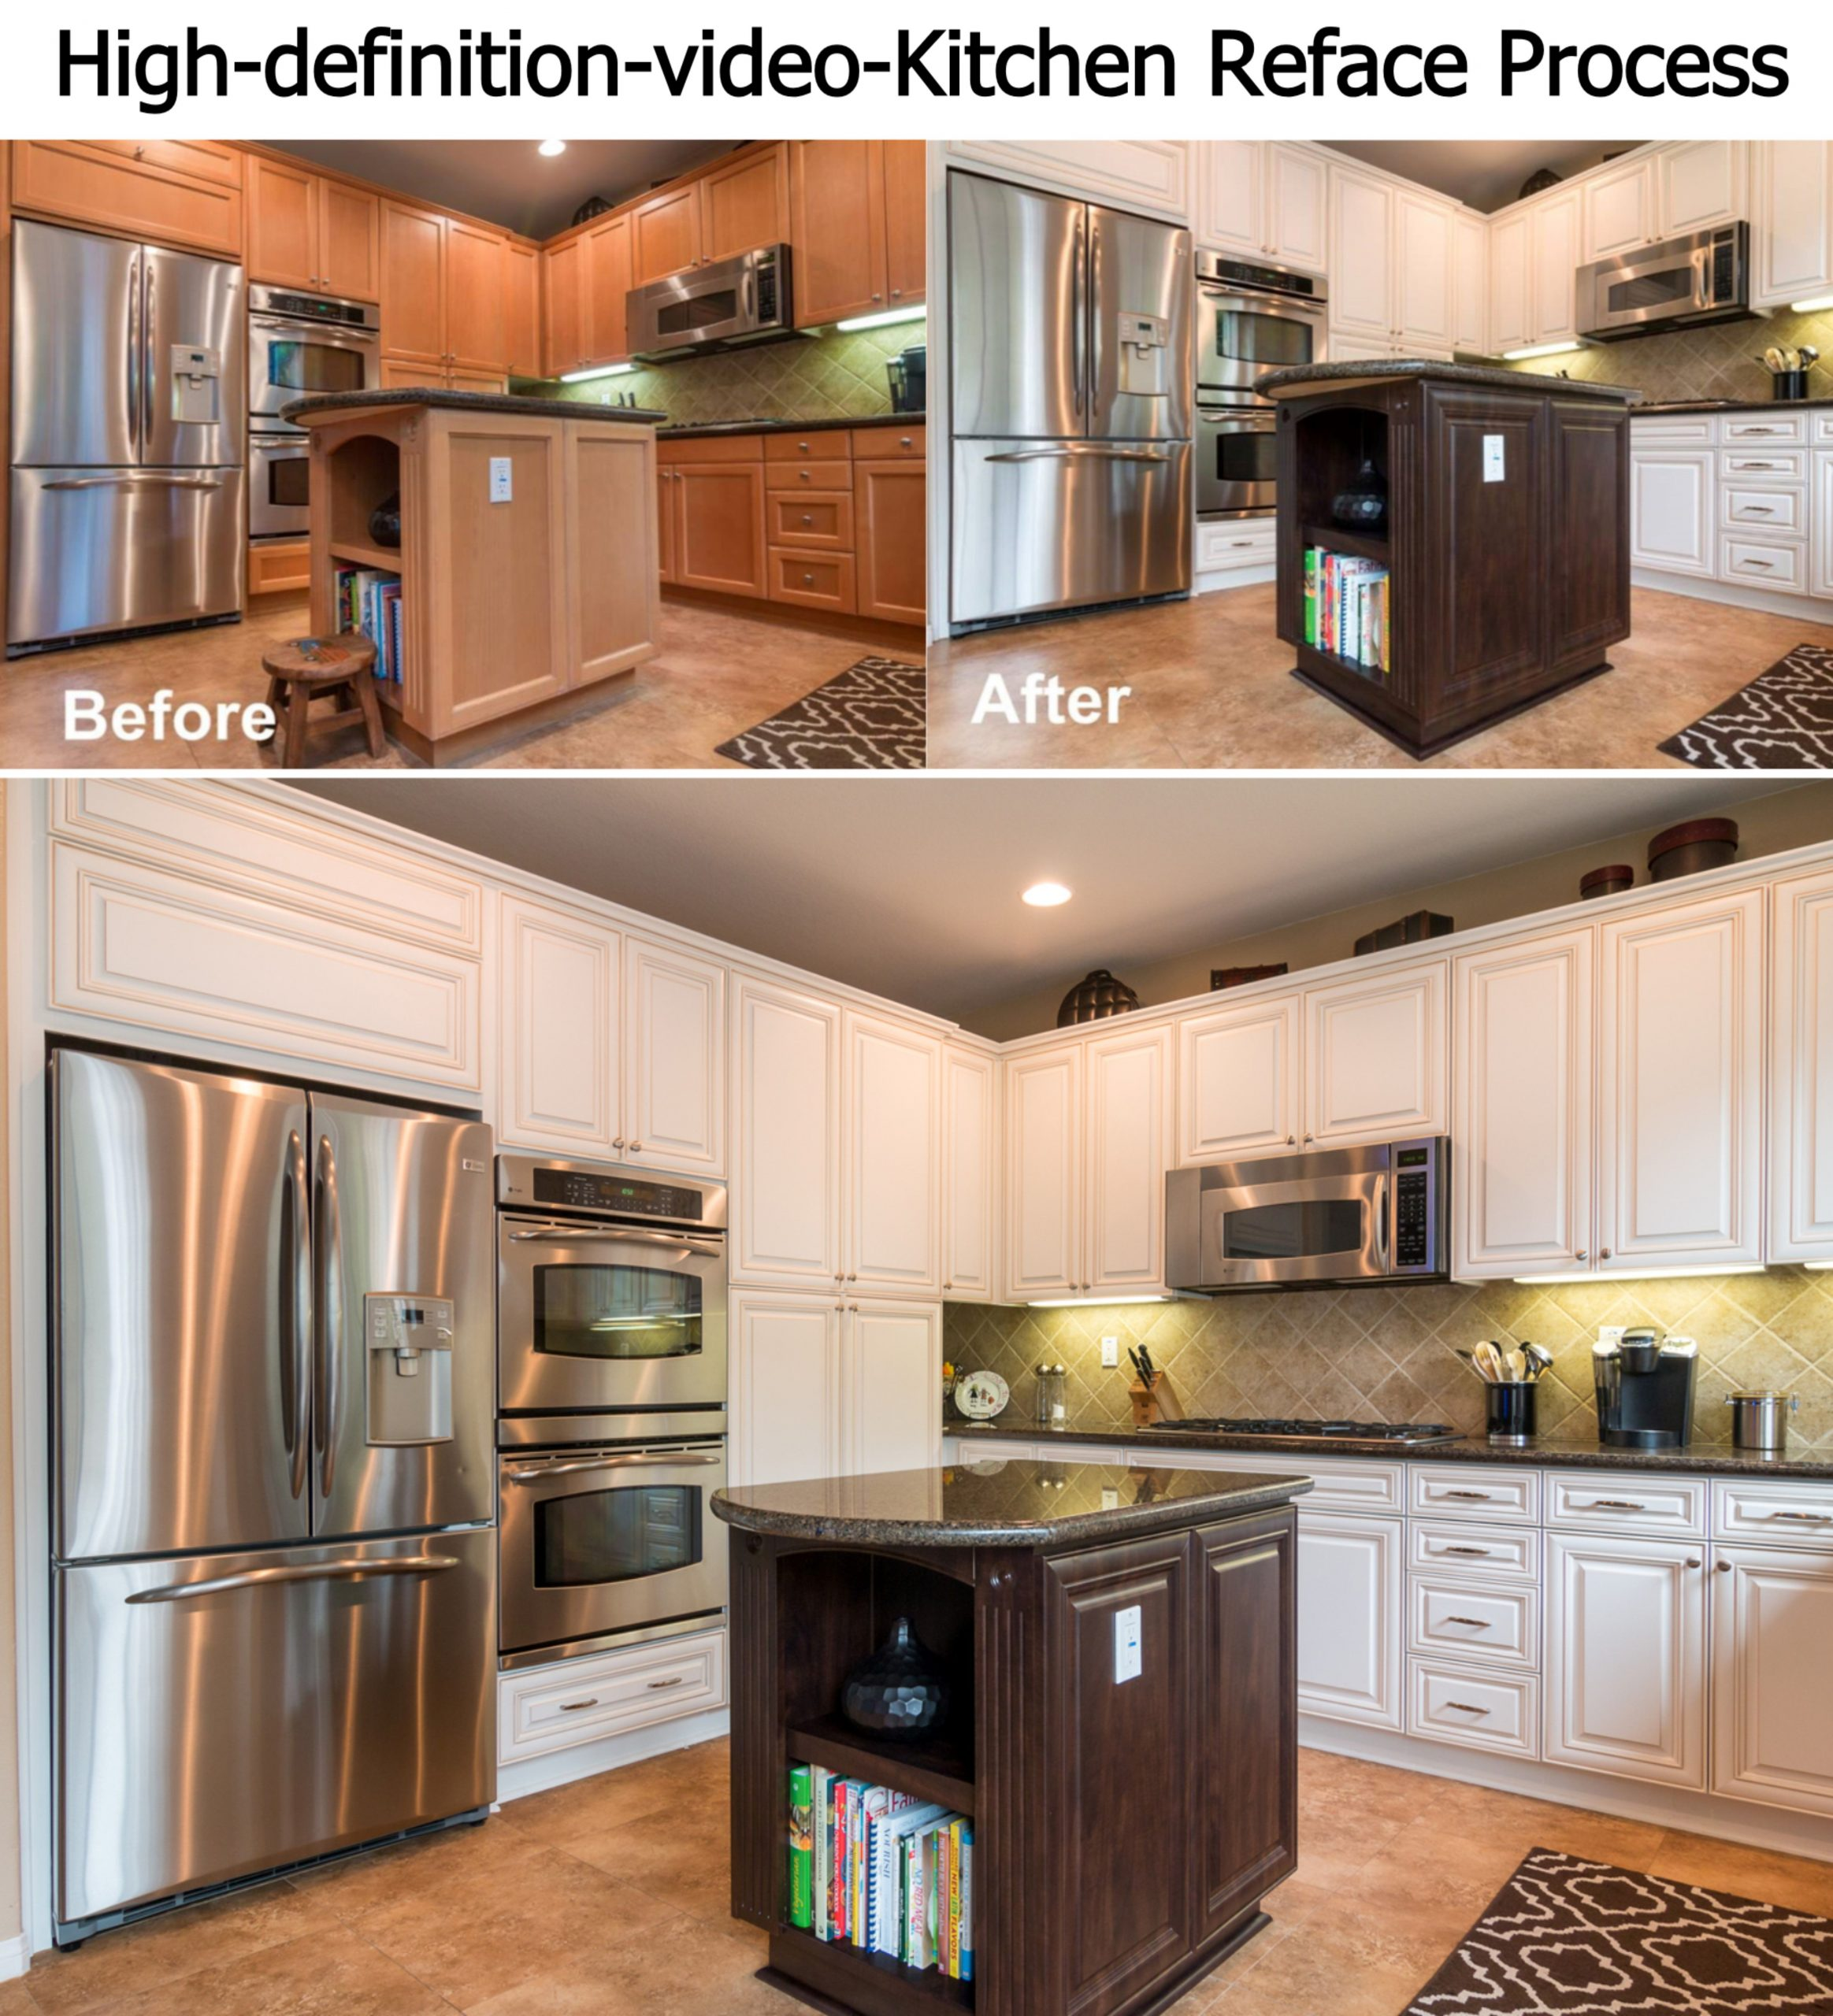 Reface Your Kitchen in as little as 3 days. Watch this amazing kitchen transform…